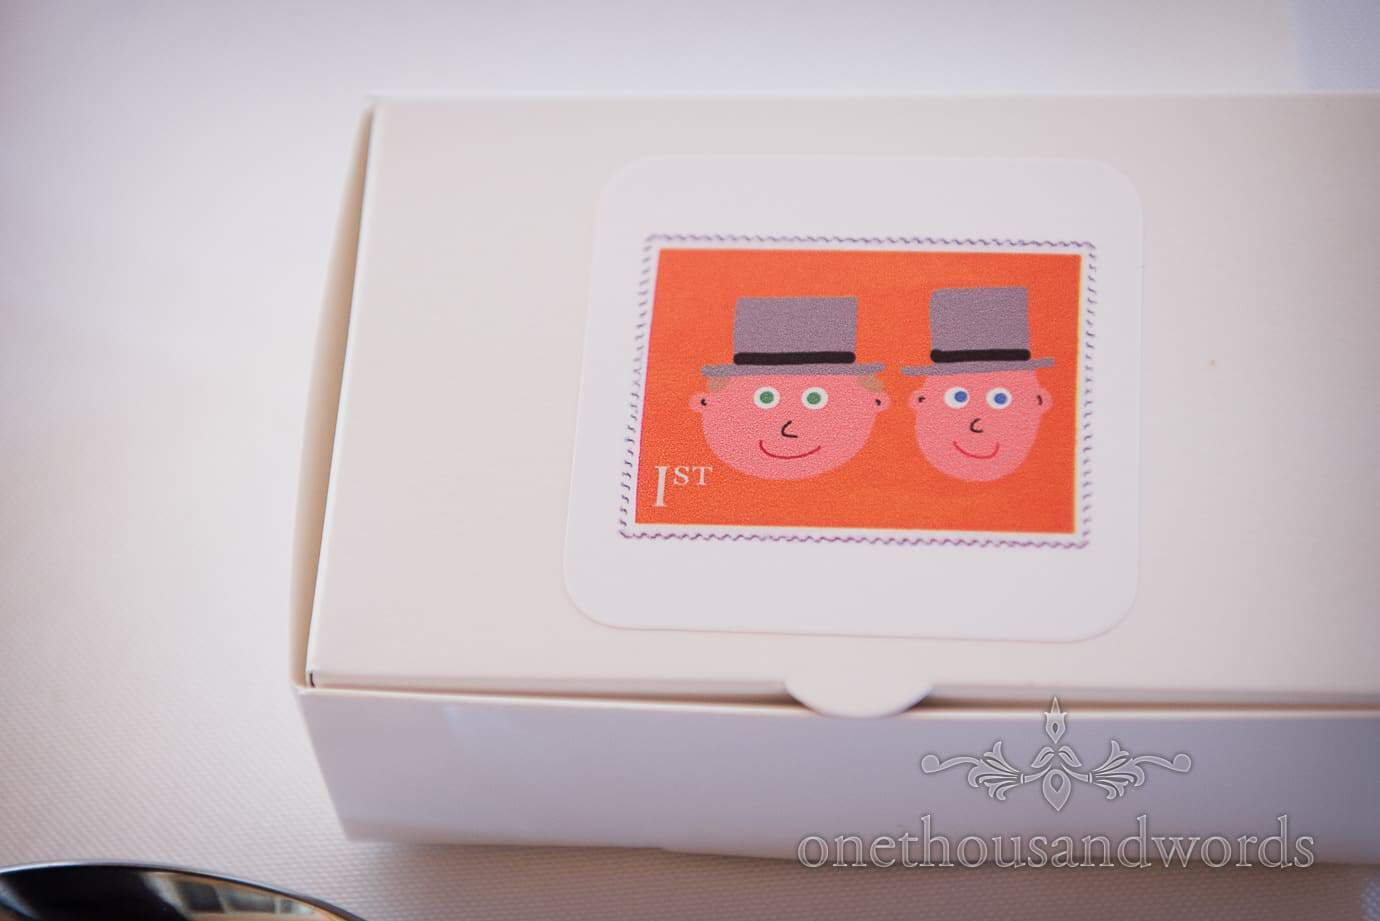 Custom made first class wedding postal stamp with cartoon grooms heads at same sex wedding